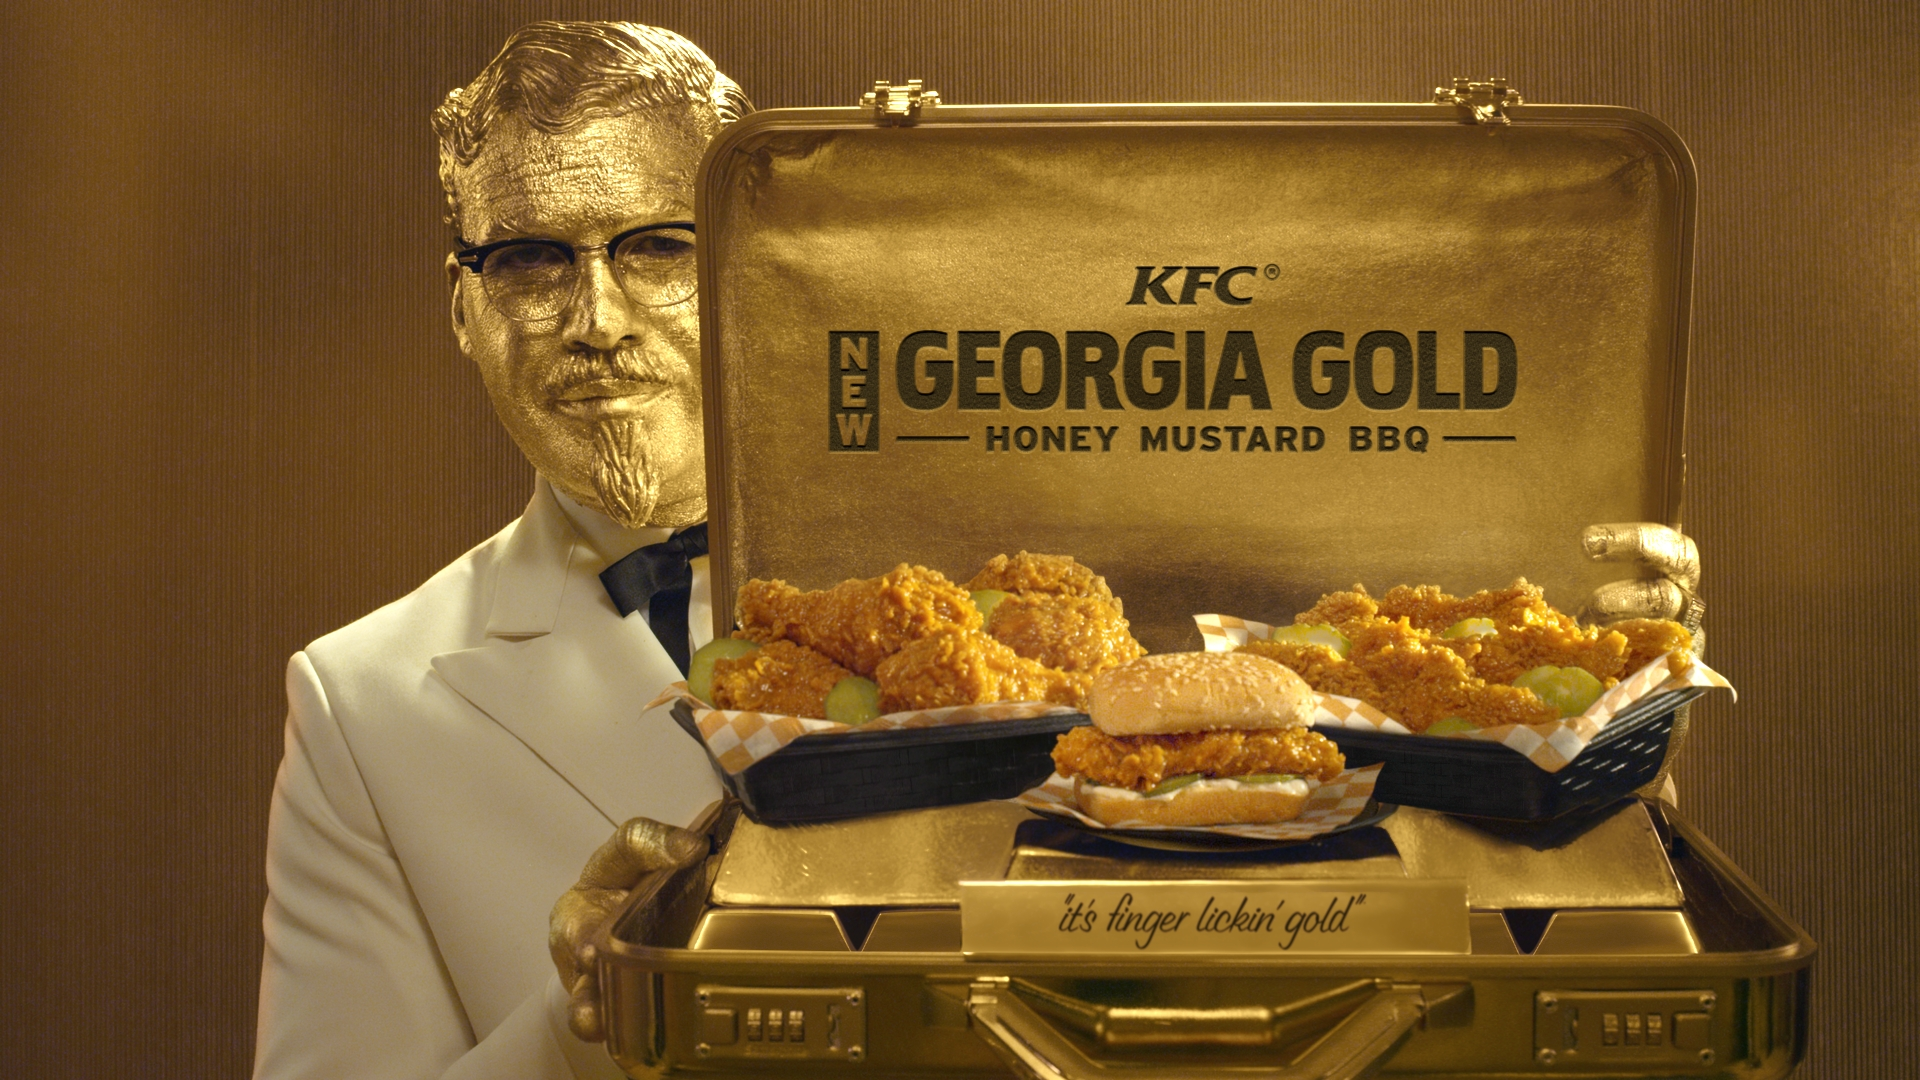 KFC's latest ads to support the new Georgia Gold Honey Mustard BBQ chicken features actor Billy Zane.